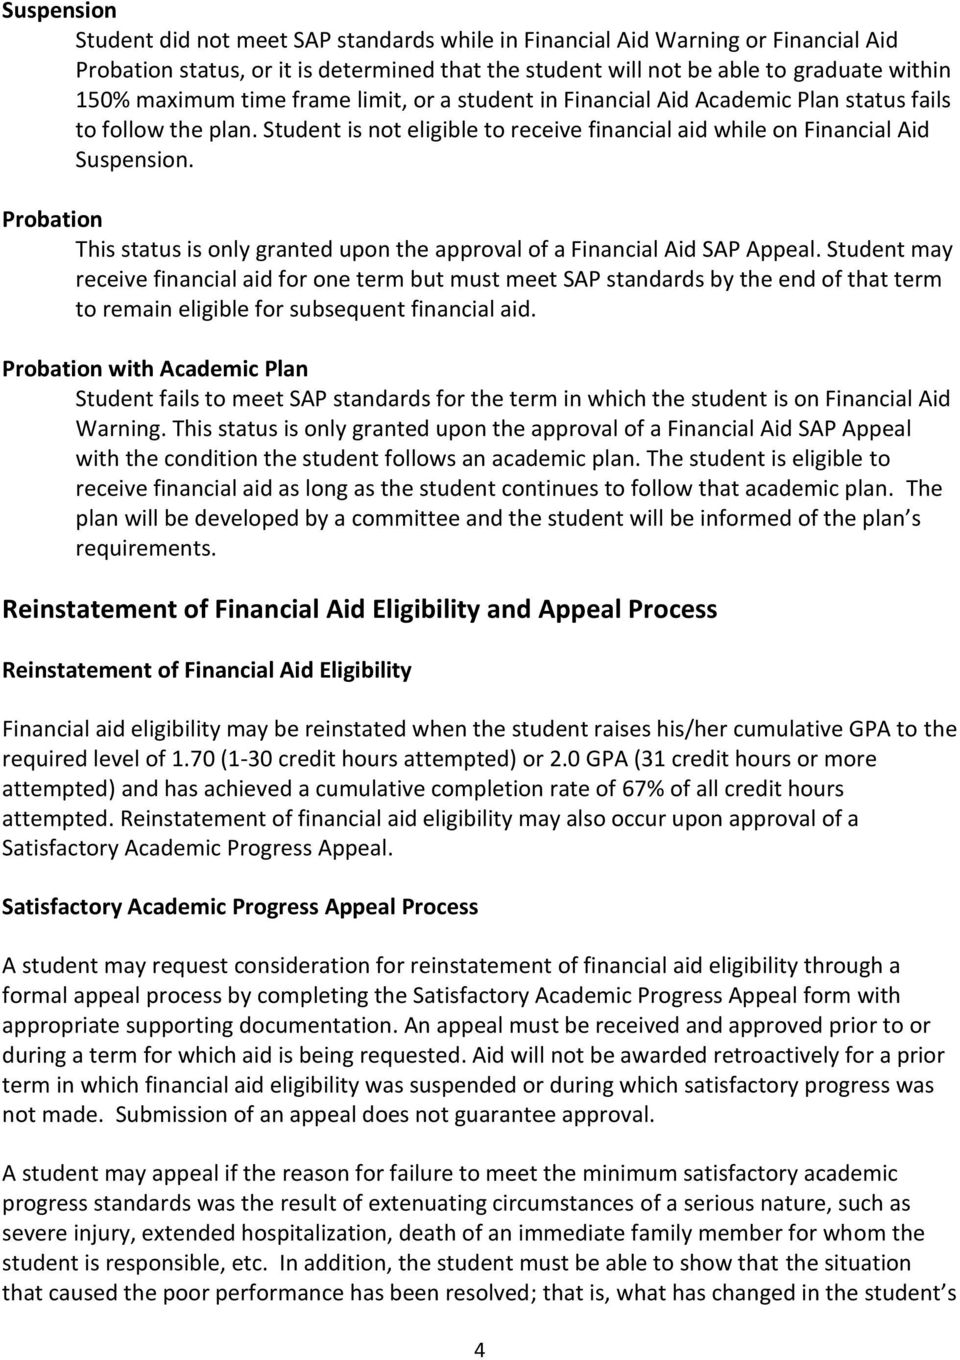 Probation This status is only granted upon the approval of a Financial Aid SAP Appeal.